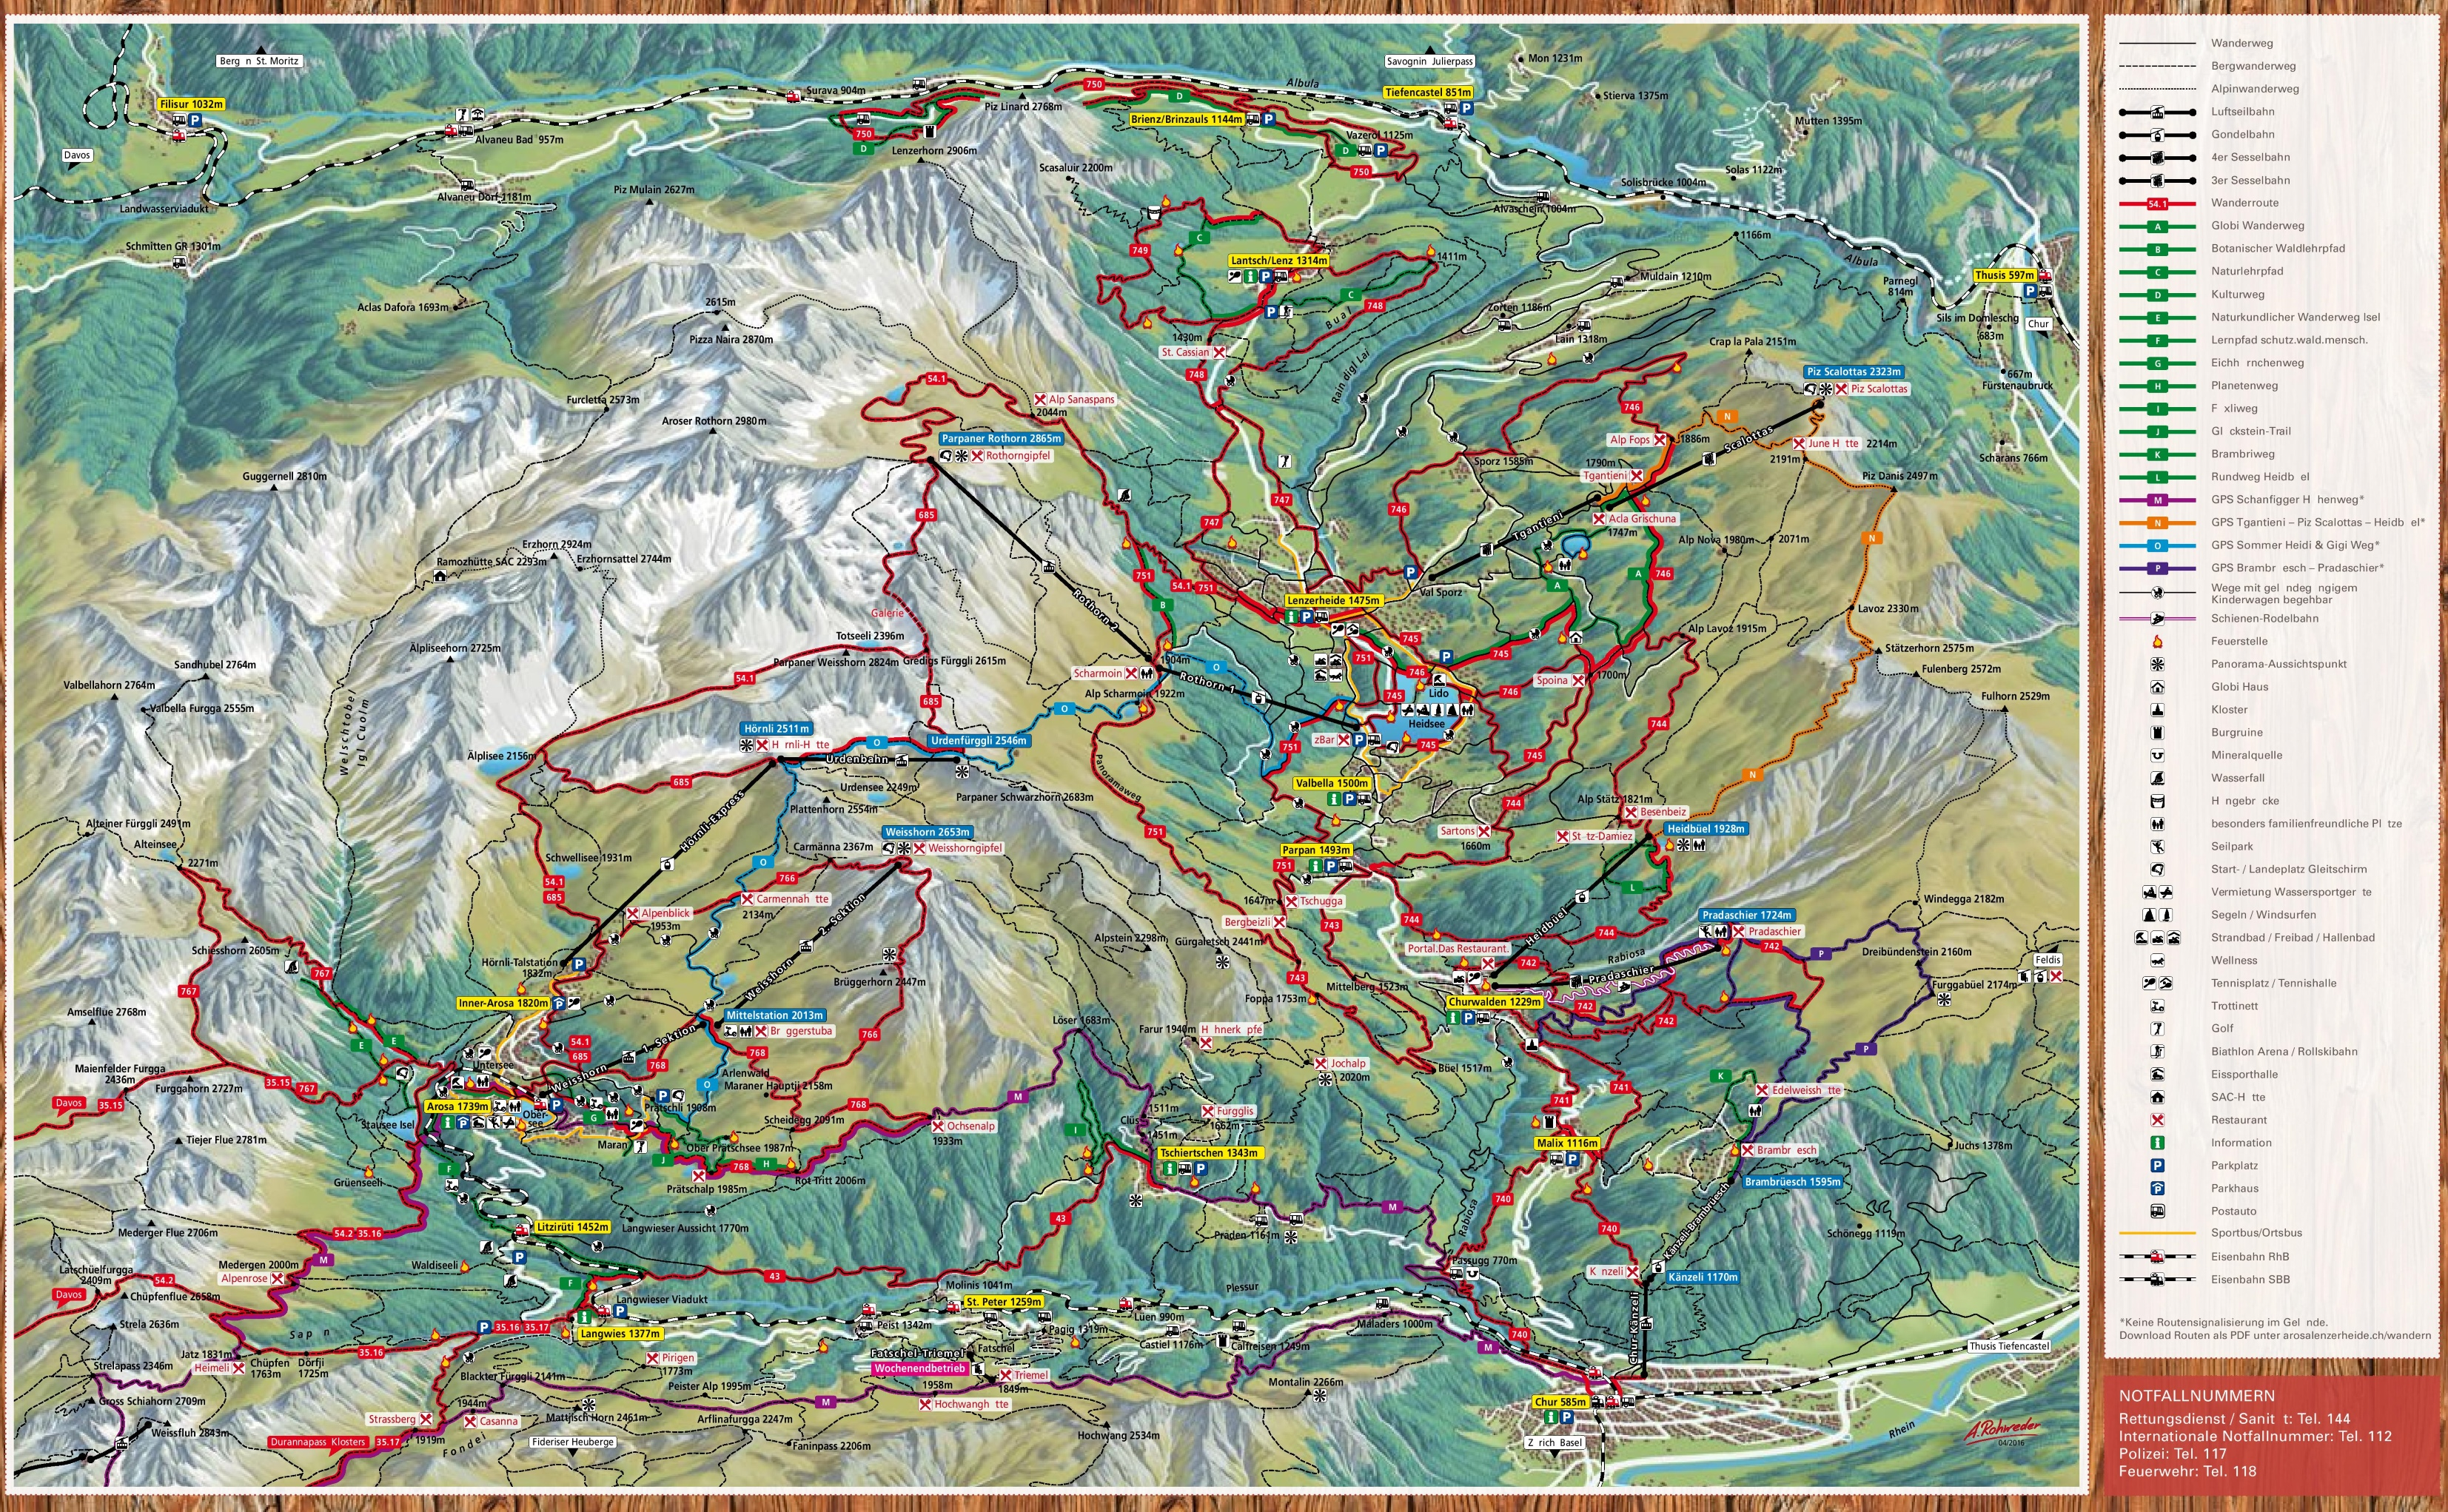 Arosa summer map